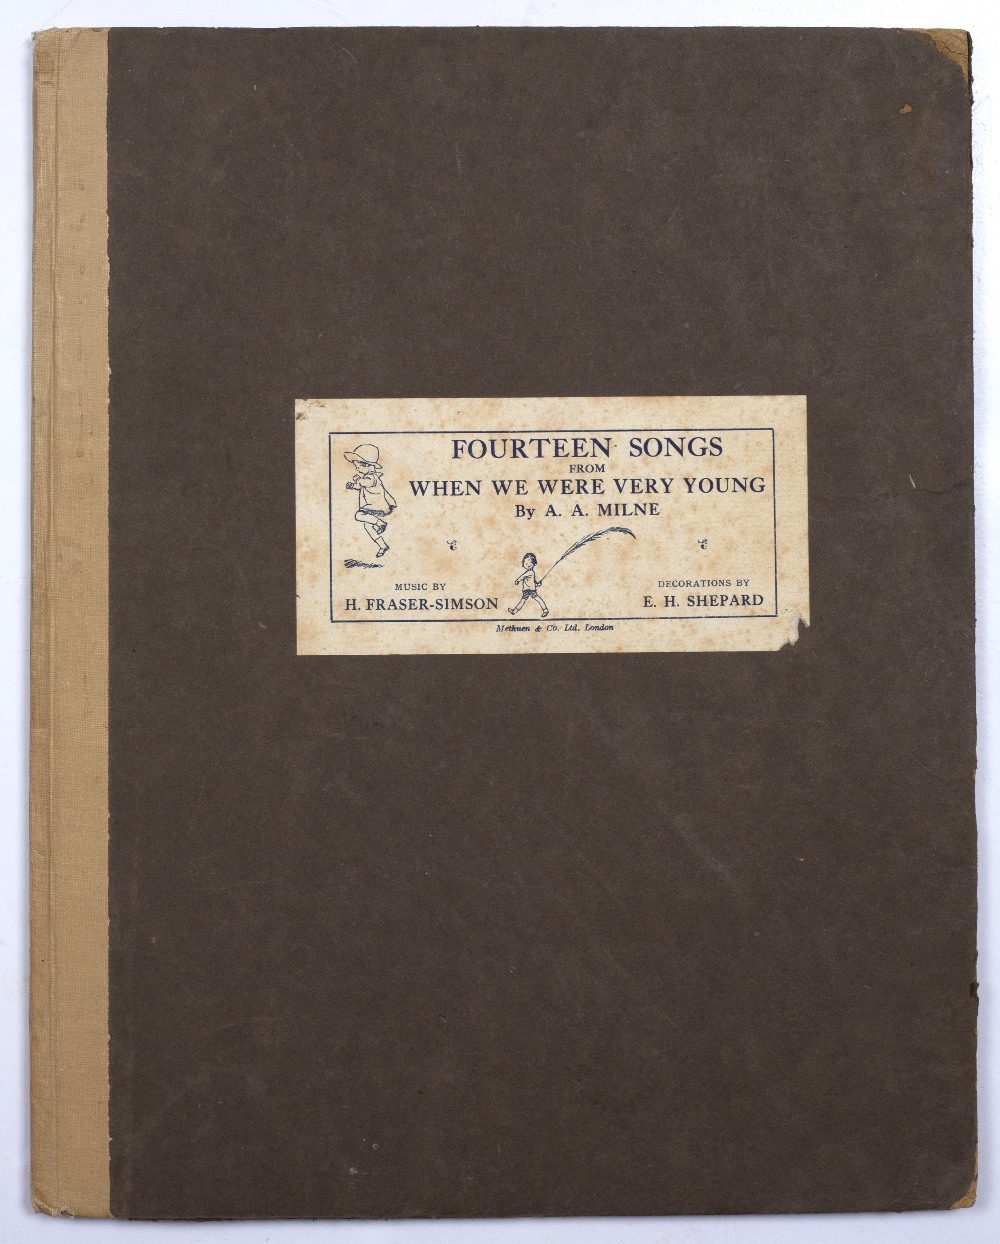 MILNE, A.A. 'Fourteen Songs from When We Were Very Young' music by H Fraser-Simson, E.H. Shephard.